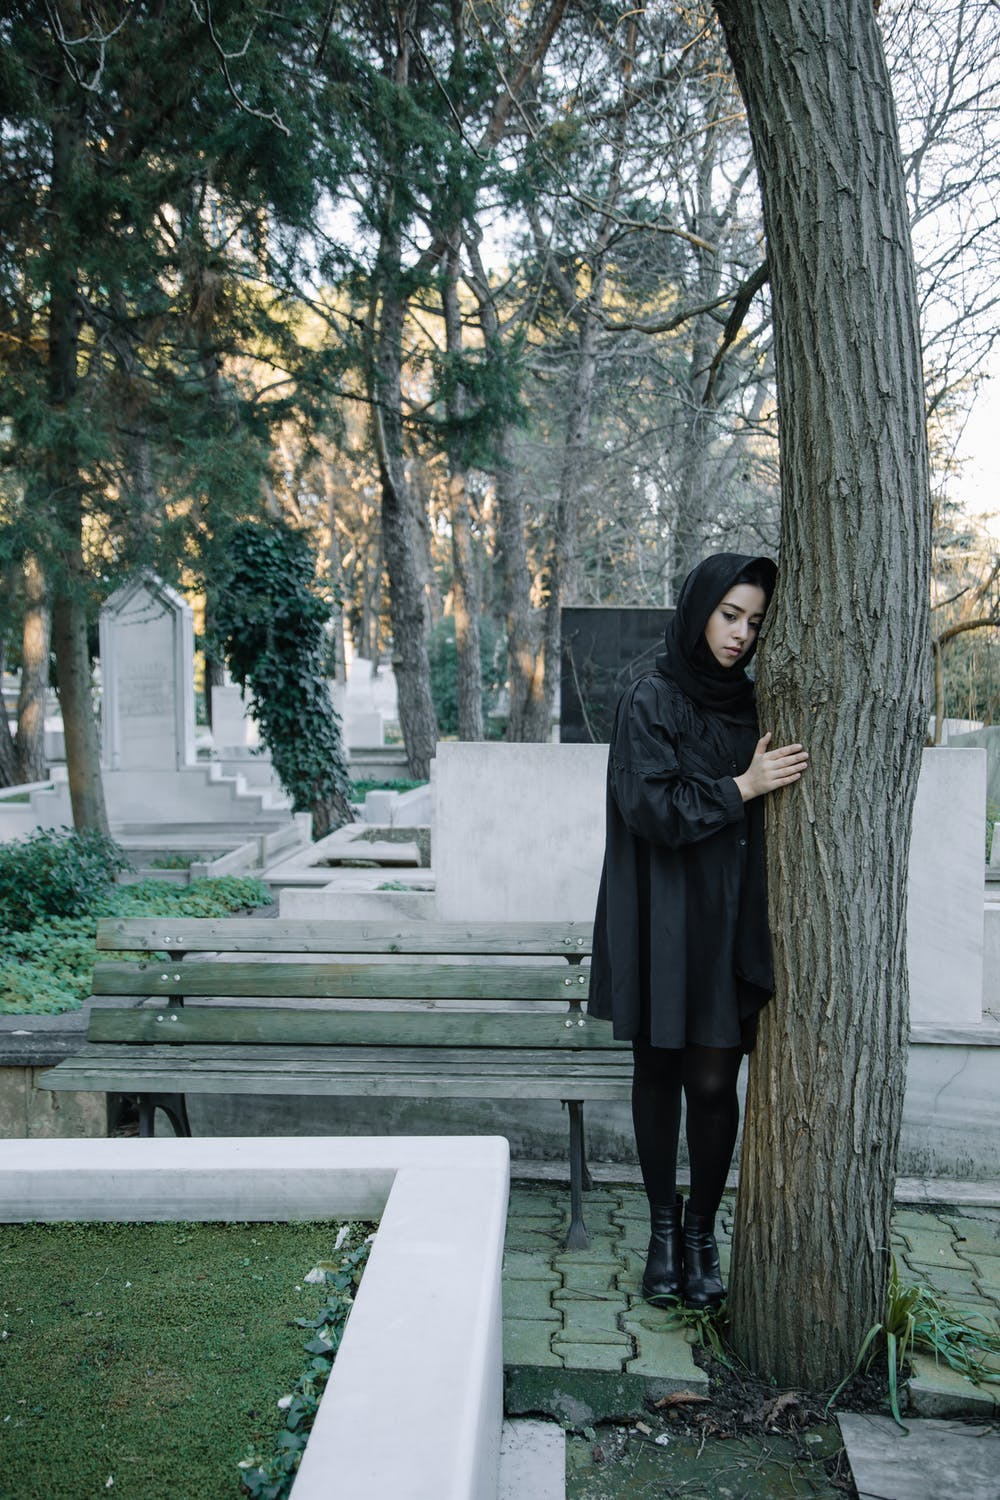 Girl in a cemetery   Source: Pexels